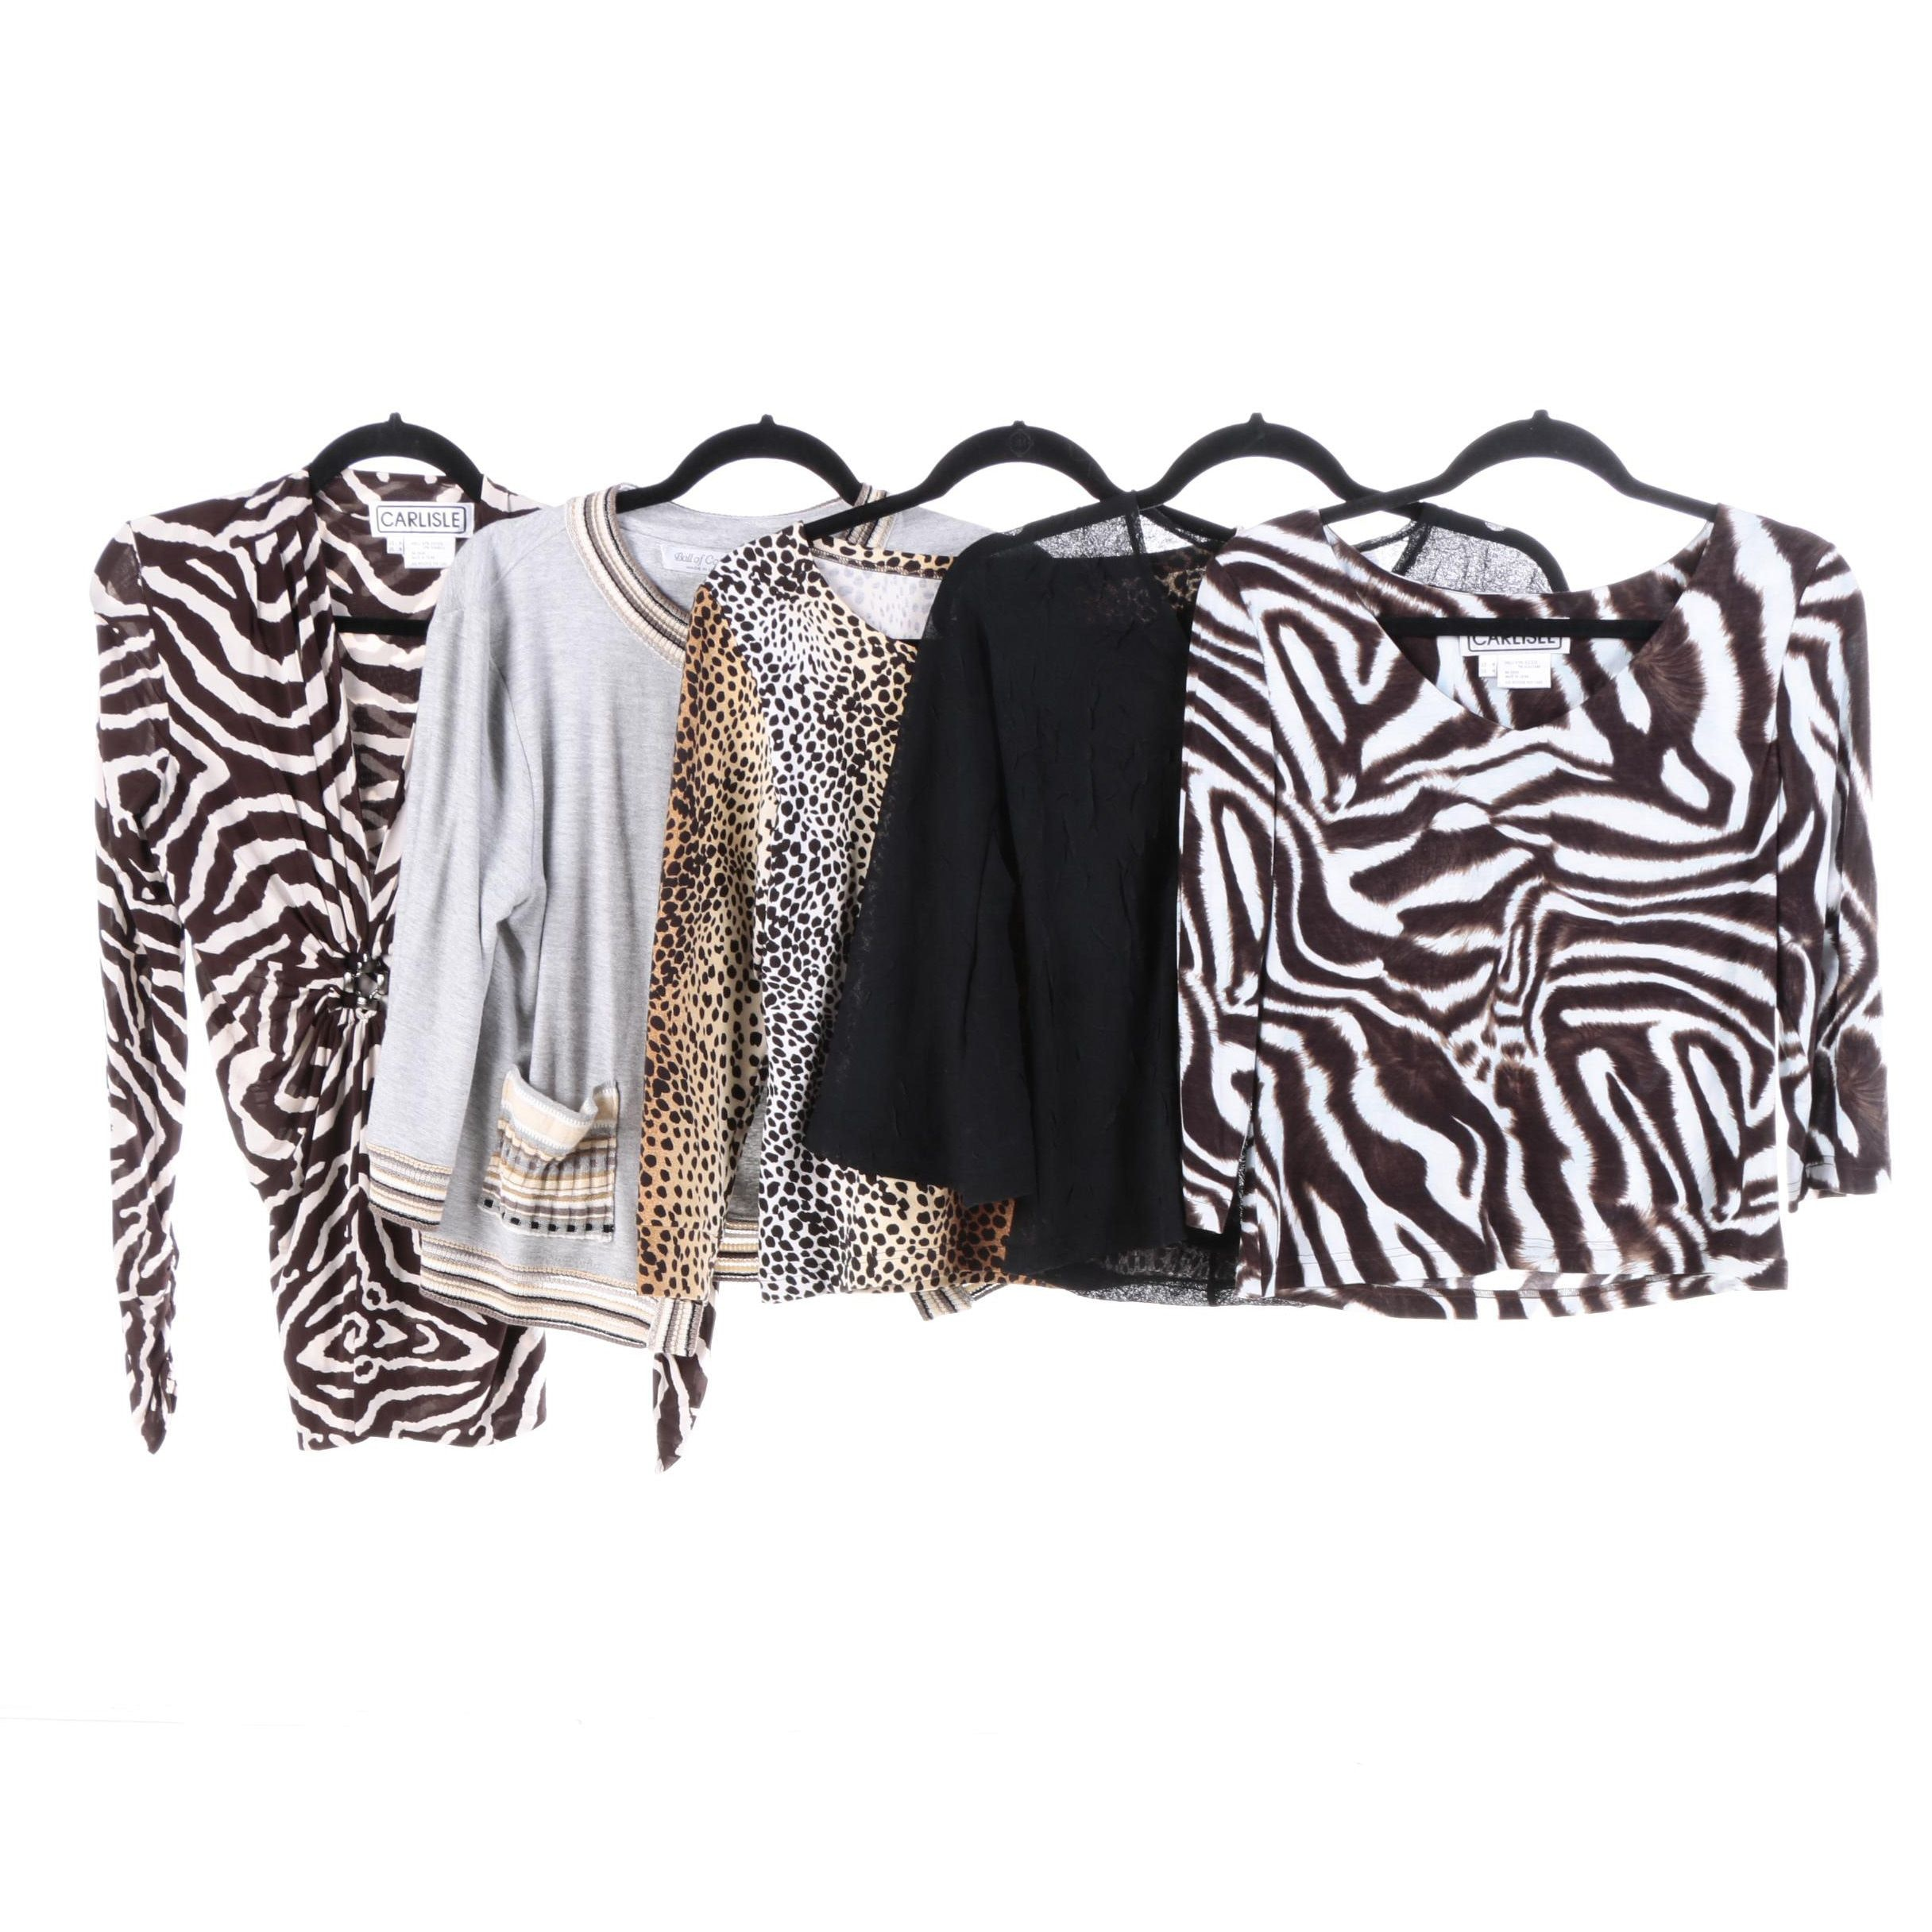 Women's Animal Print Shirts and Cardigan